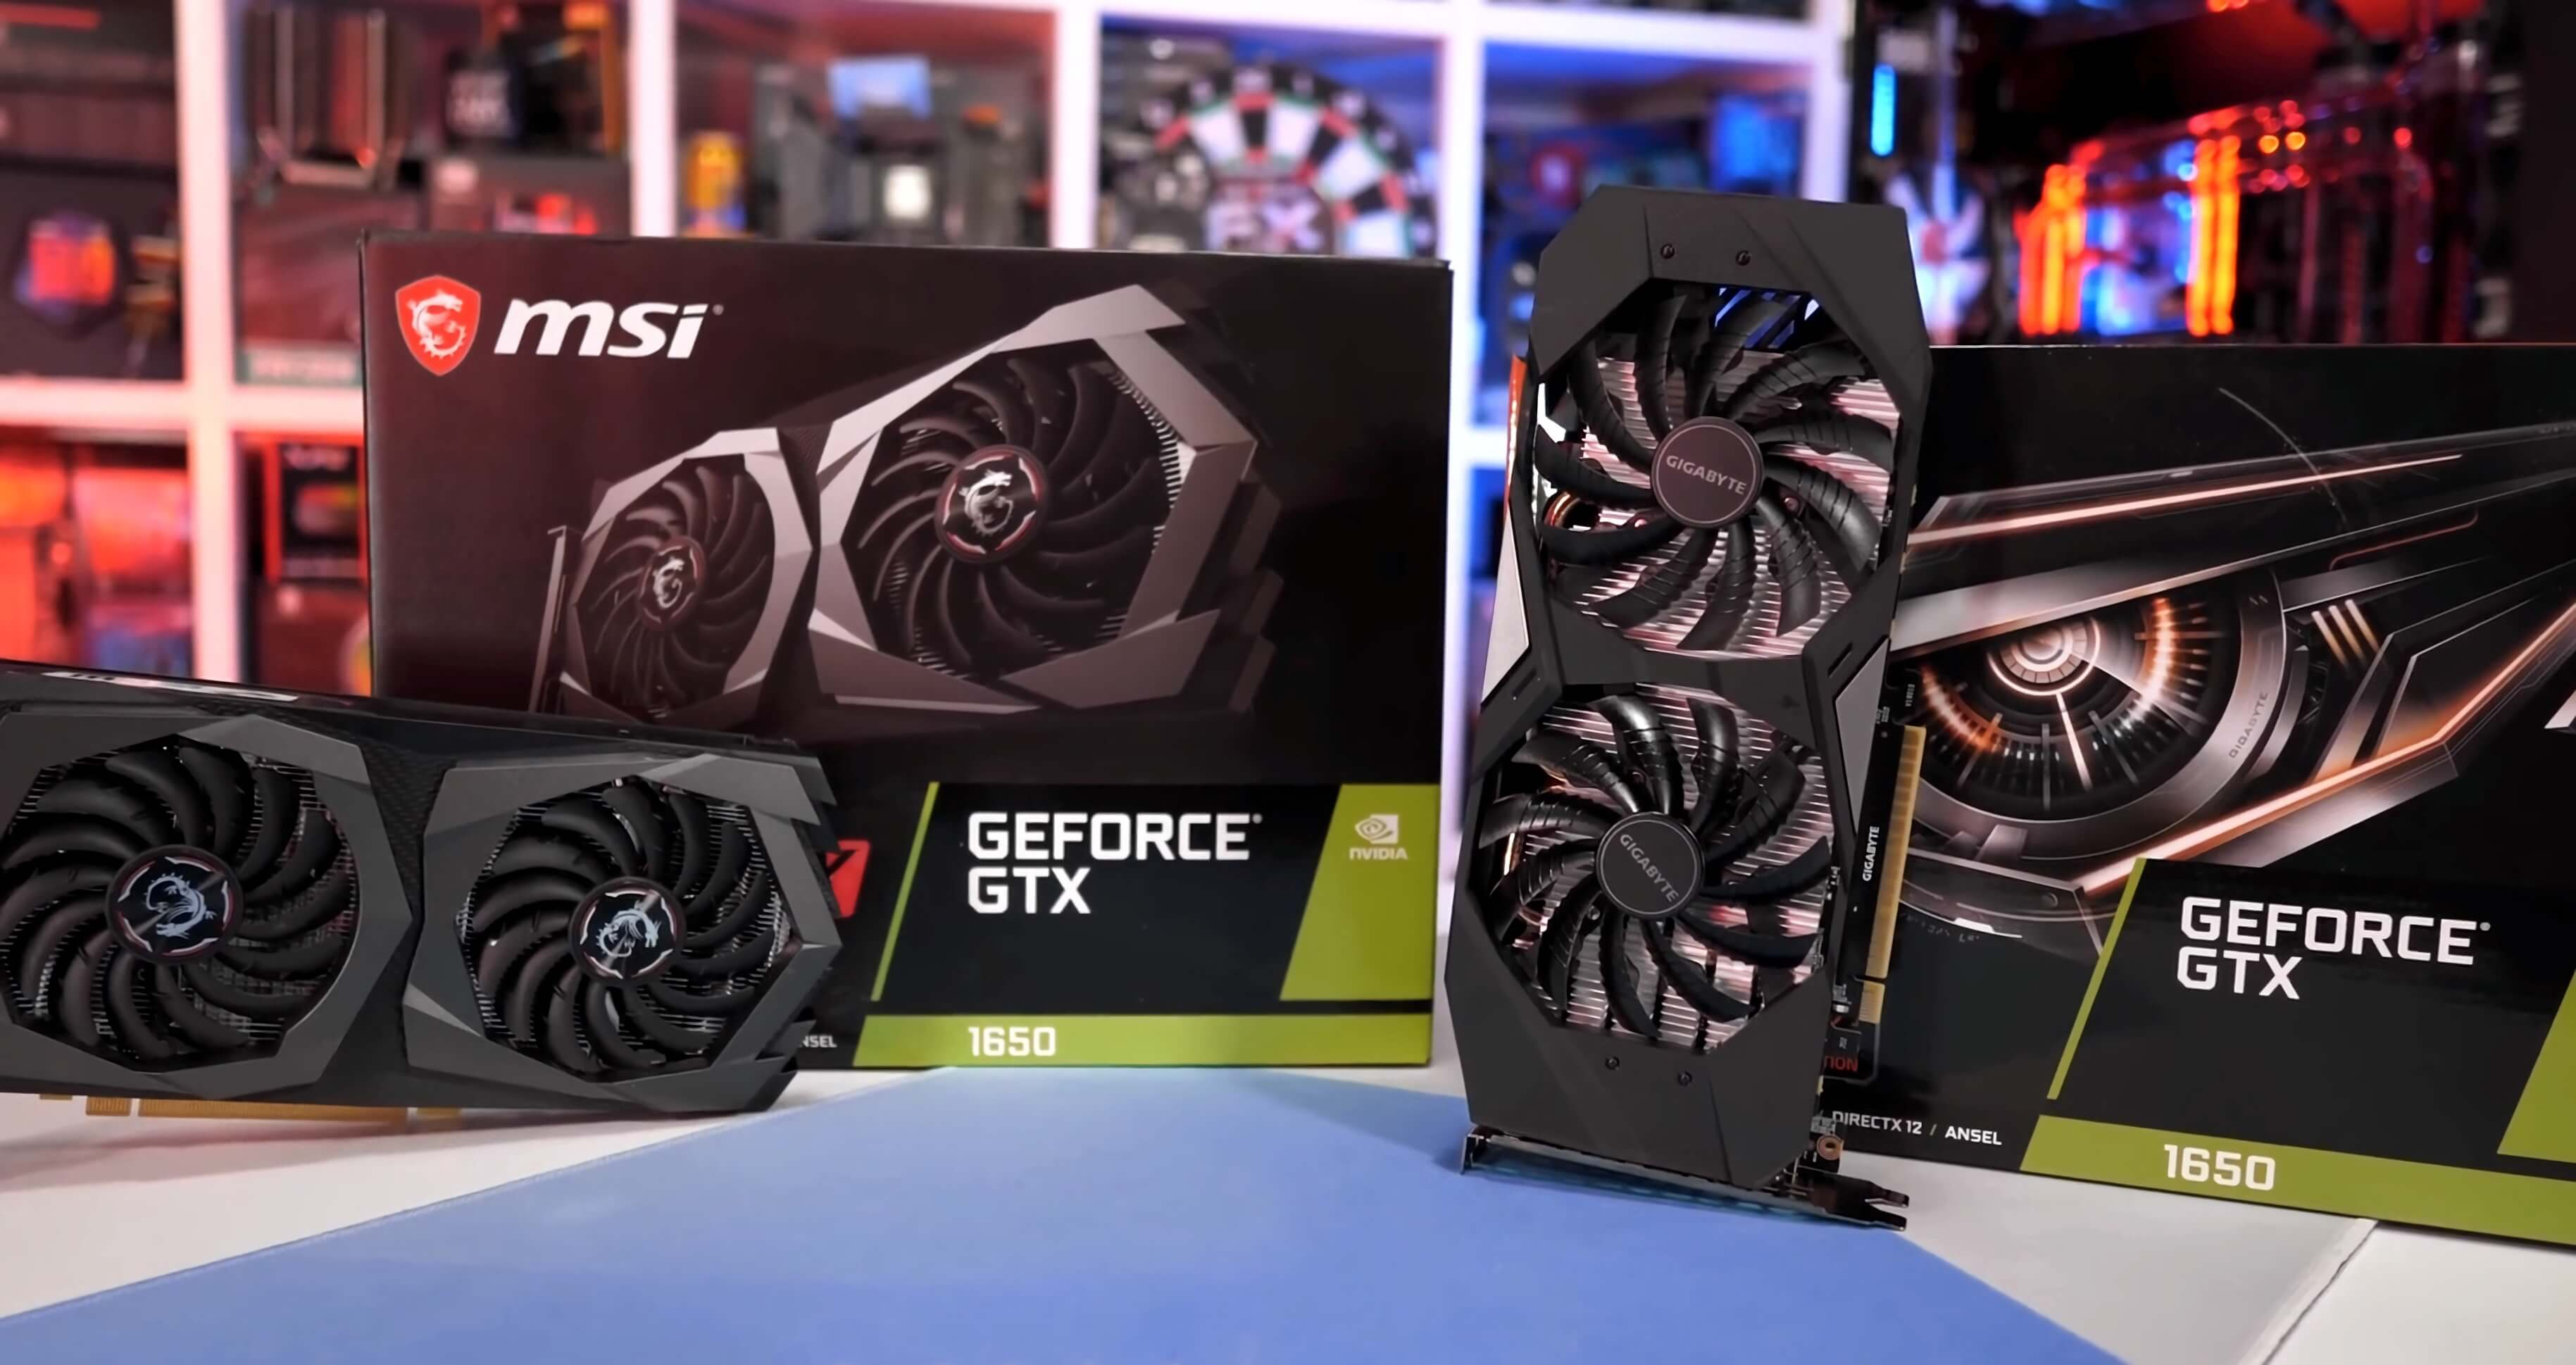 GeForce GTX 1650 Review: Turing at $150 - TechSpot